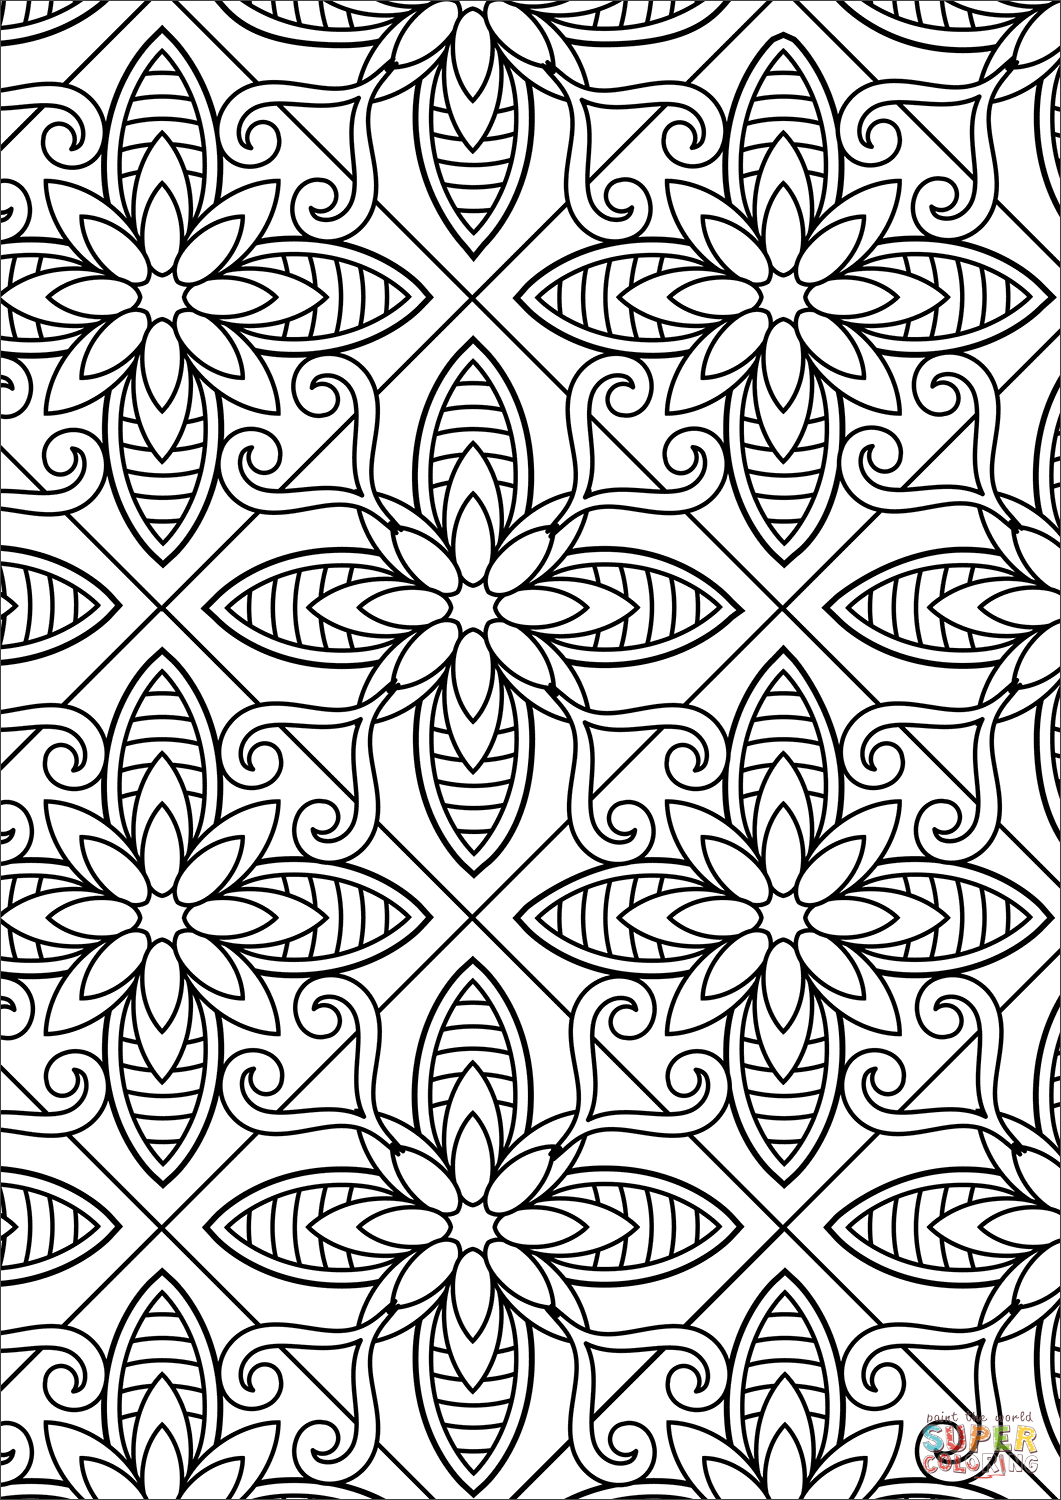 coloring designs free floral pattern coloring page free printable coloring pages designs coloring free